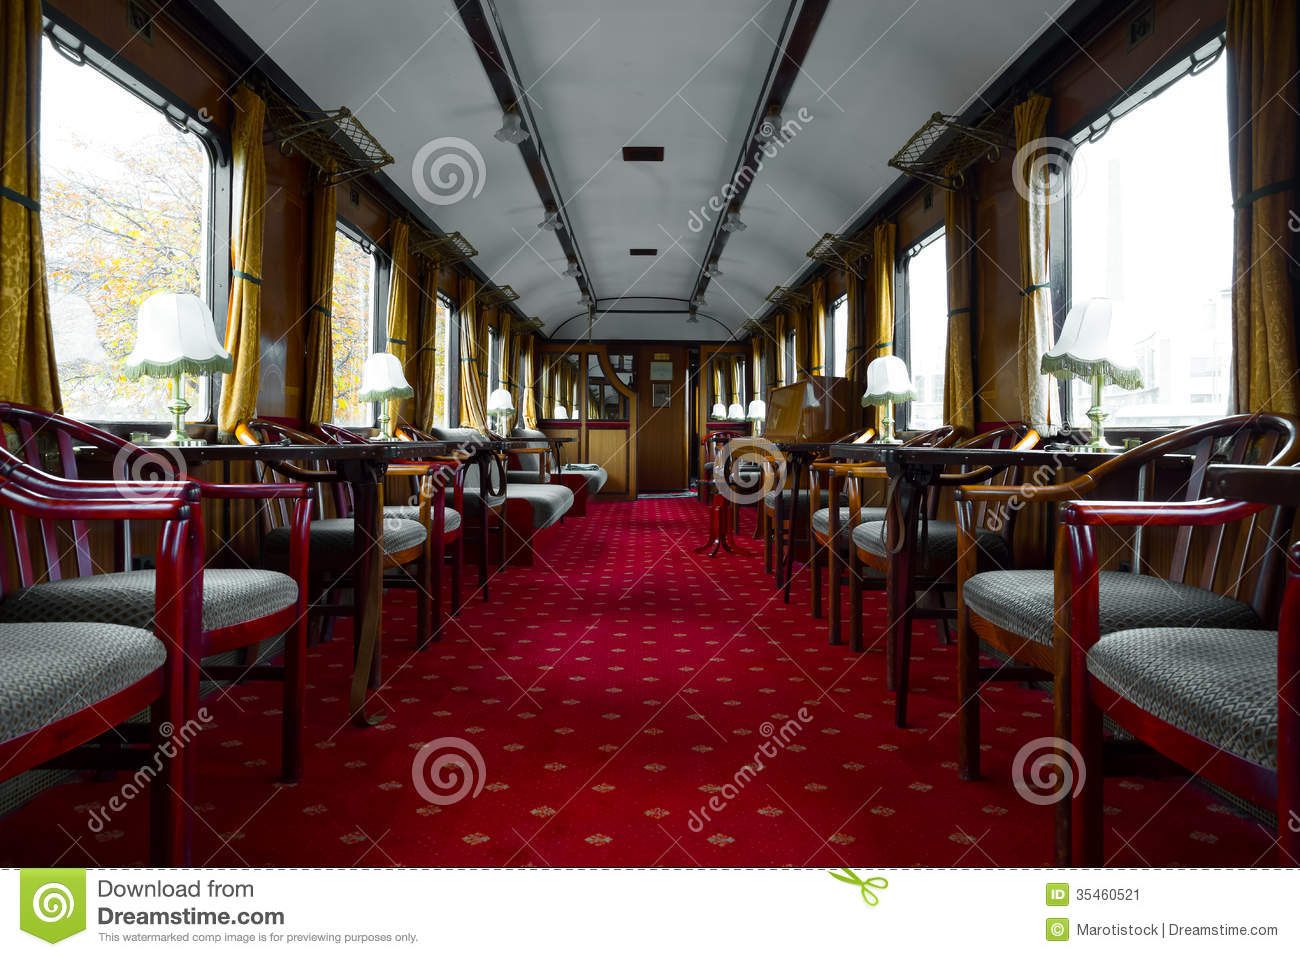 antique train interior stock image image of europe century 35460521. Black Bedroom Furniture Sets. Home Design Ideas